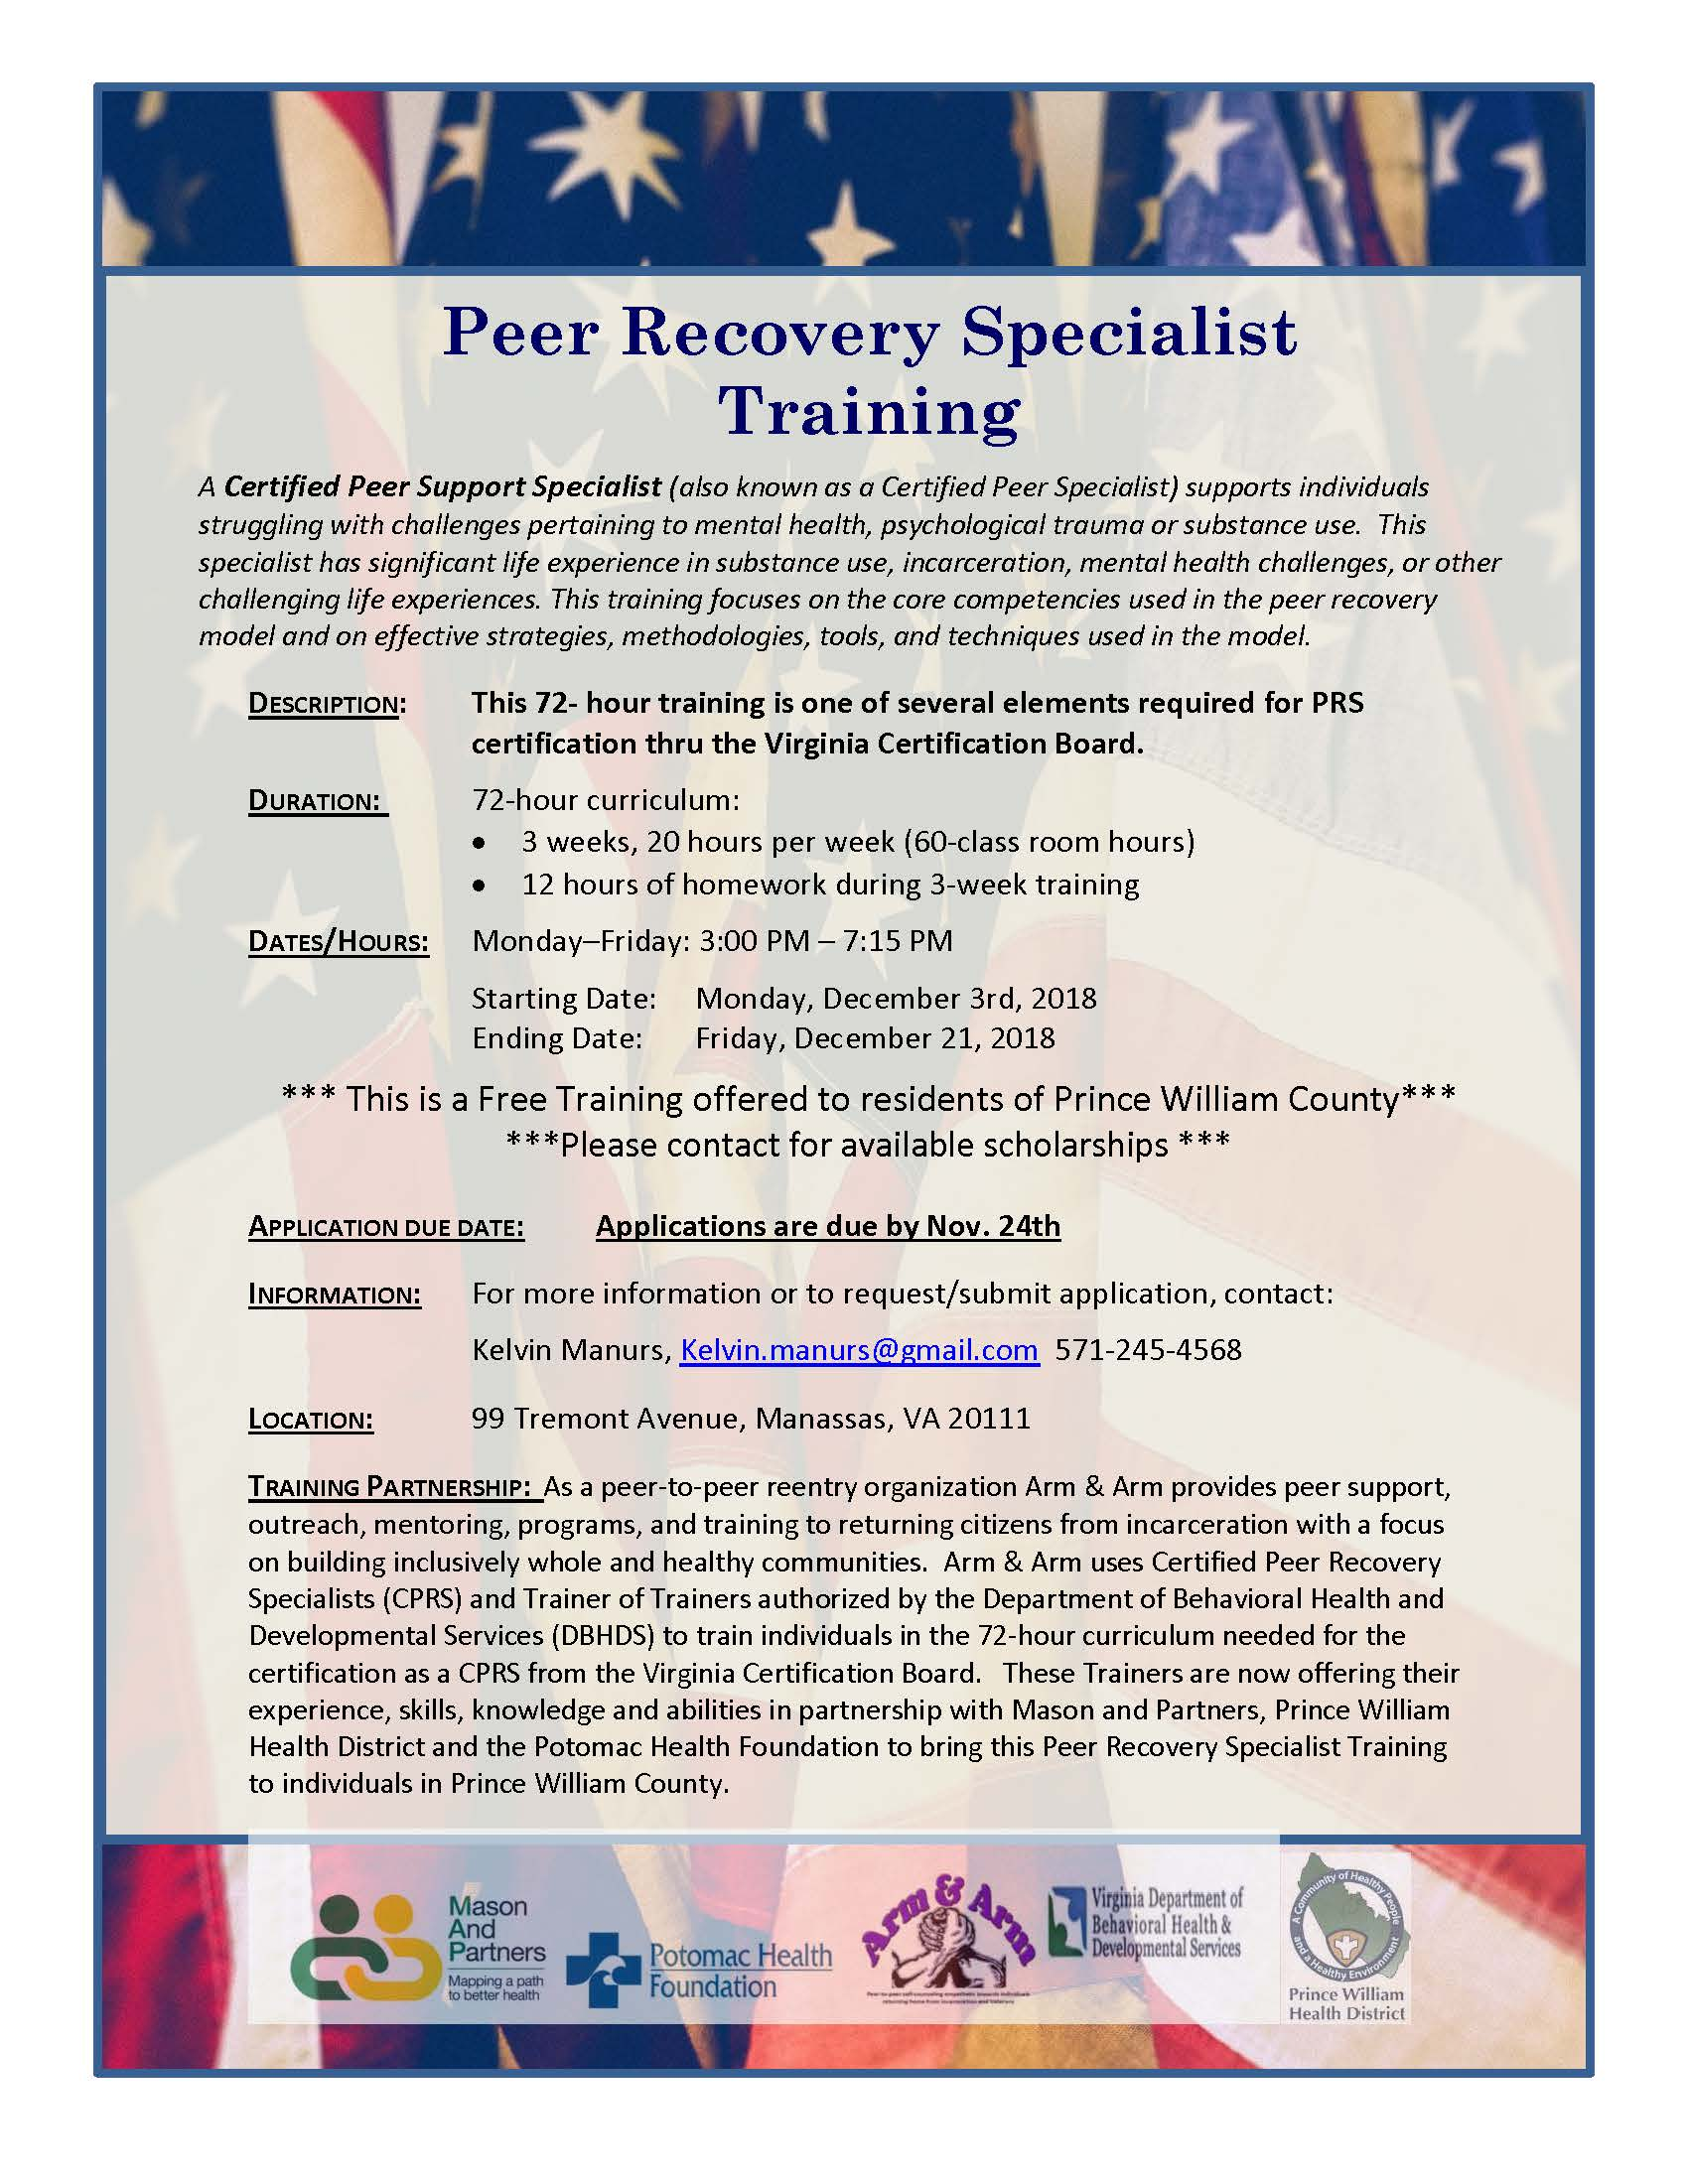 2018 PRS Training GMU (PWC) - Virginia Peer Recovery Specialist Network